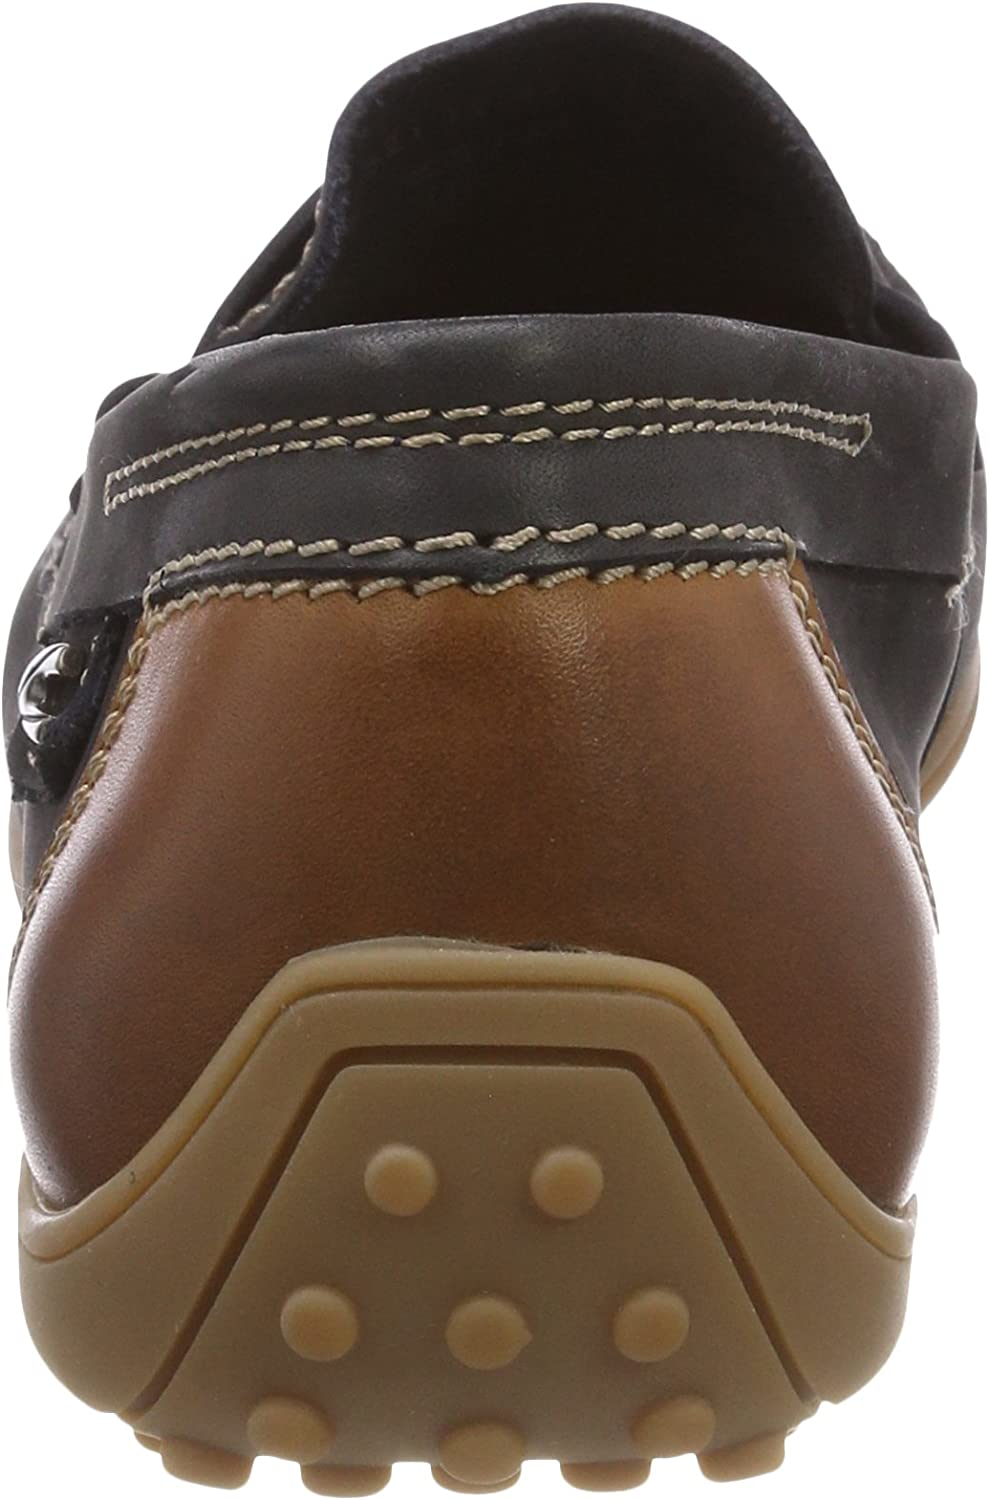 Camel Active Status Mens Casual Penny Loafers